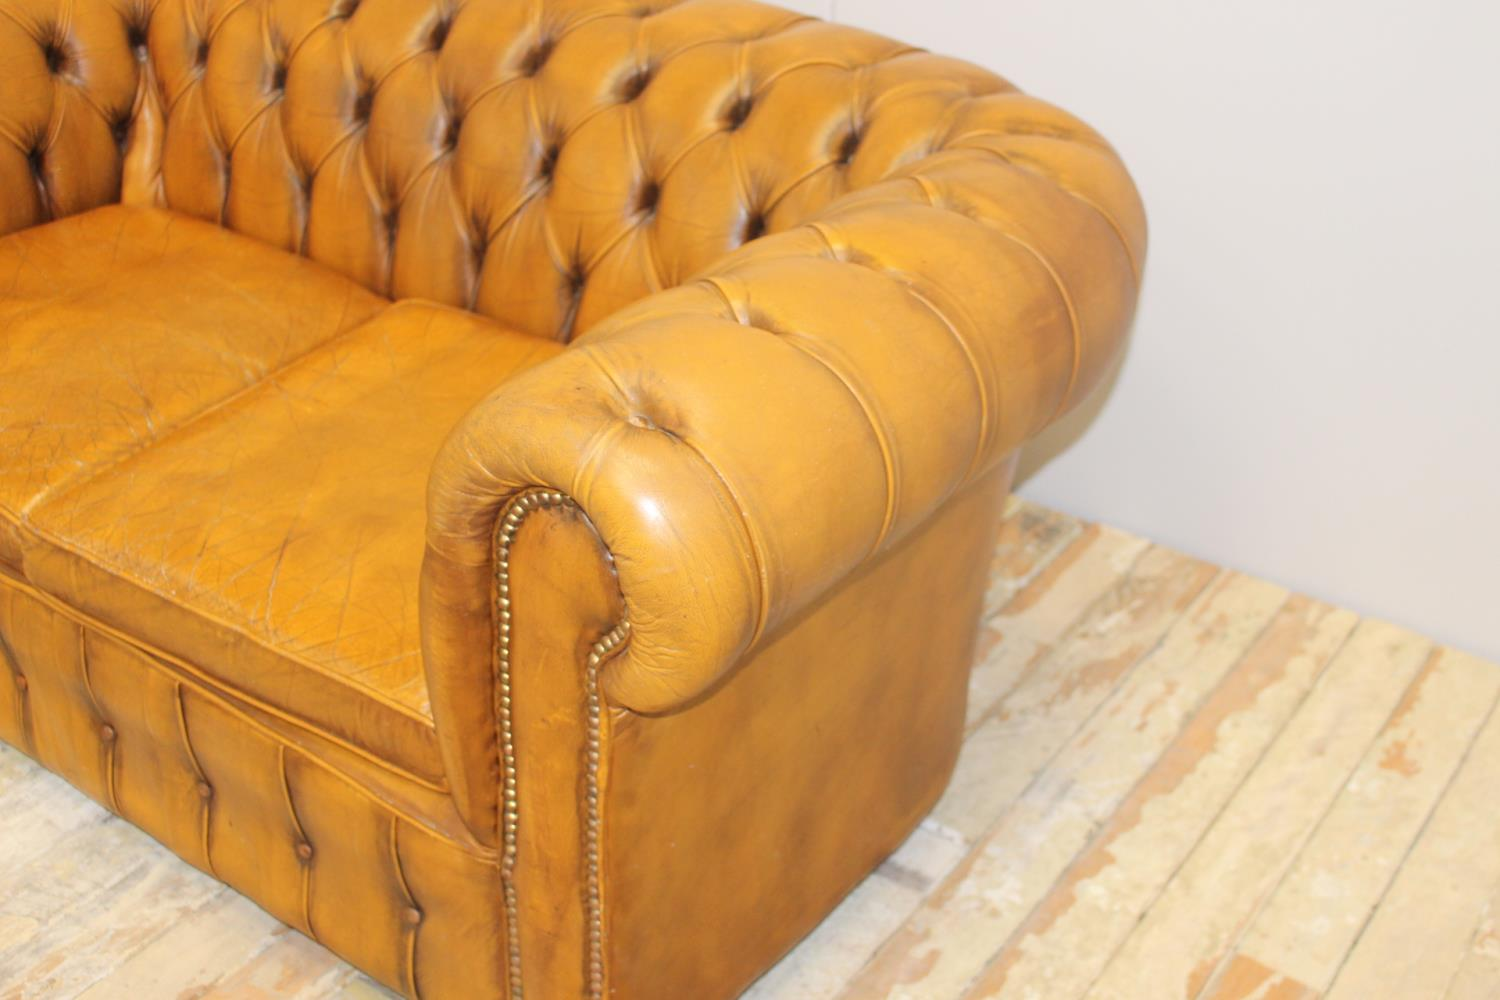 Leather upholstered two seater Chesterfield sofa - Image 2 of 3